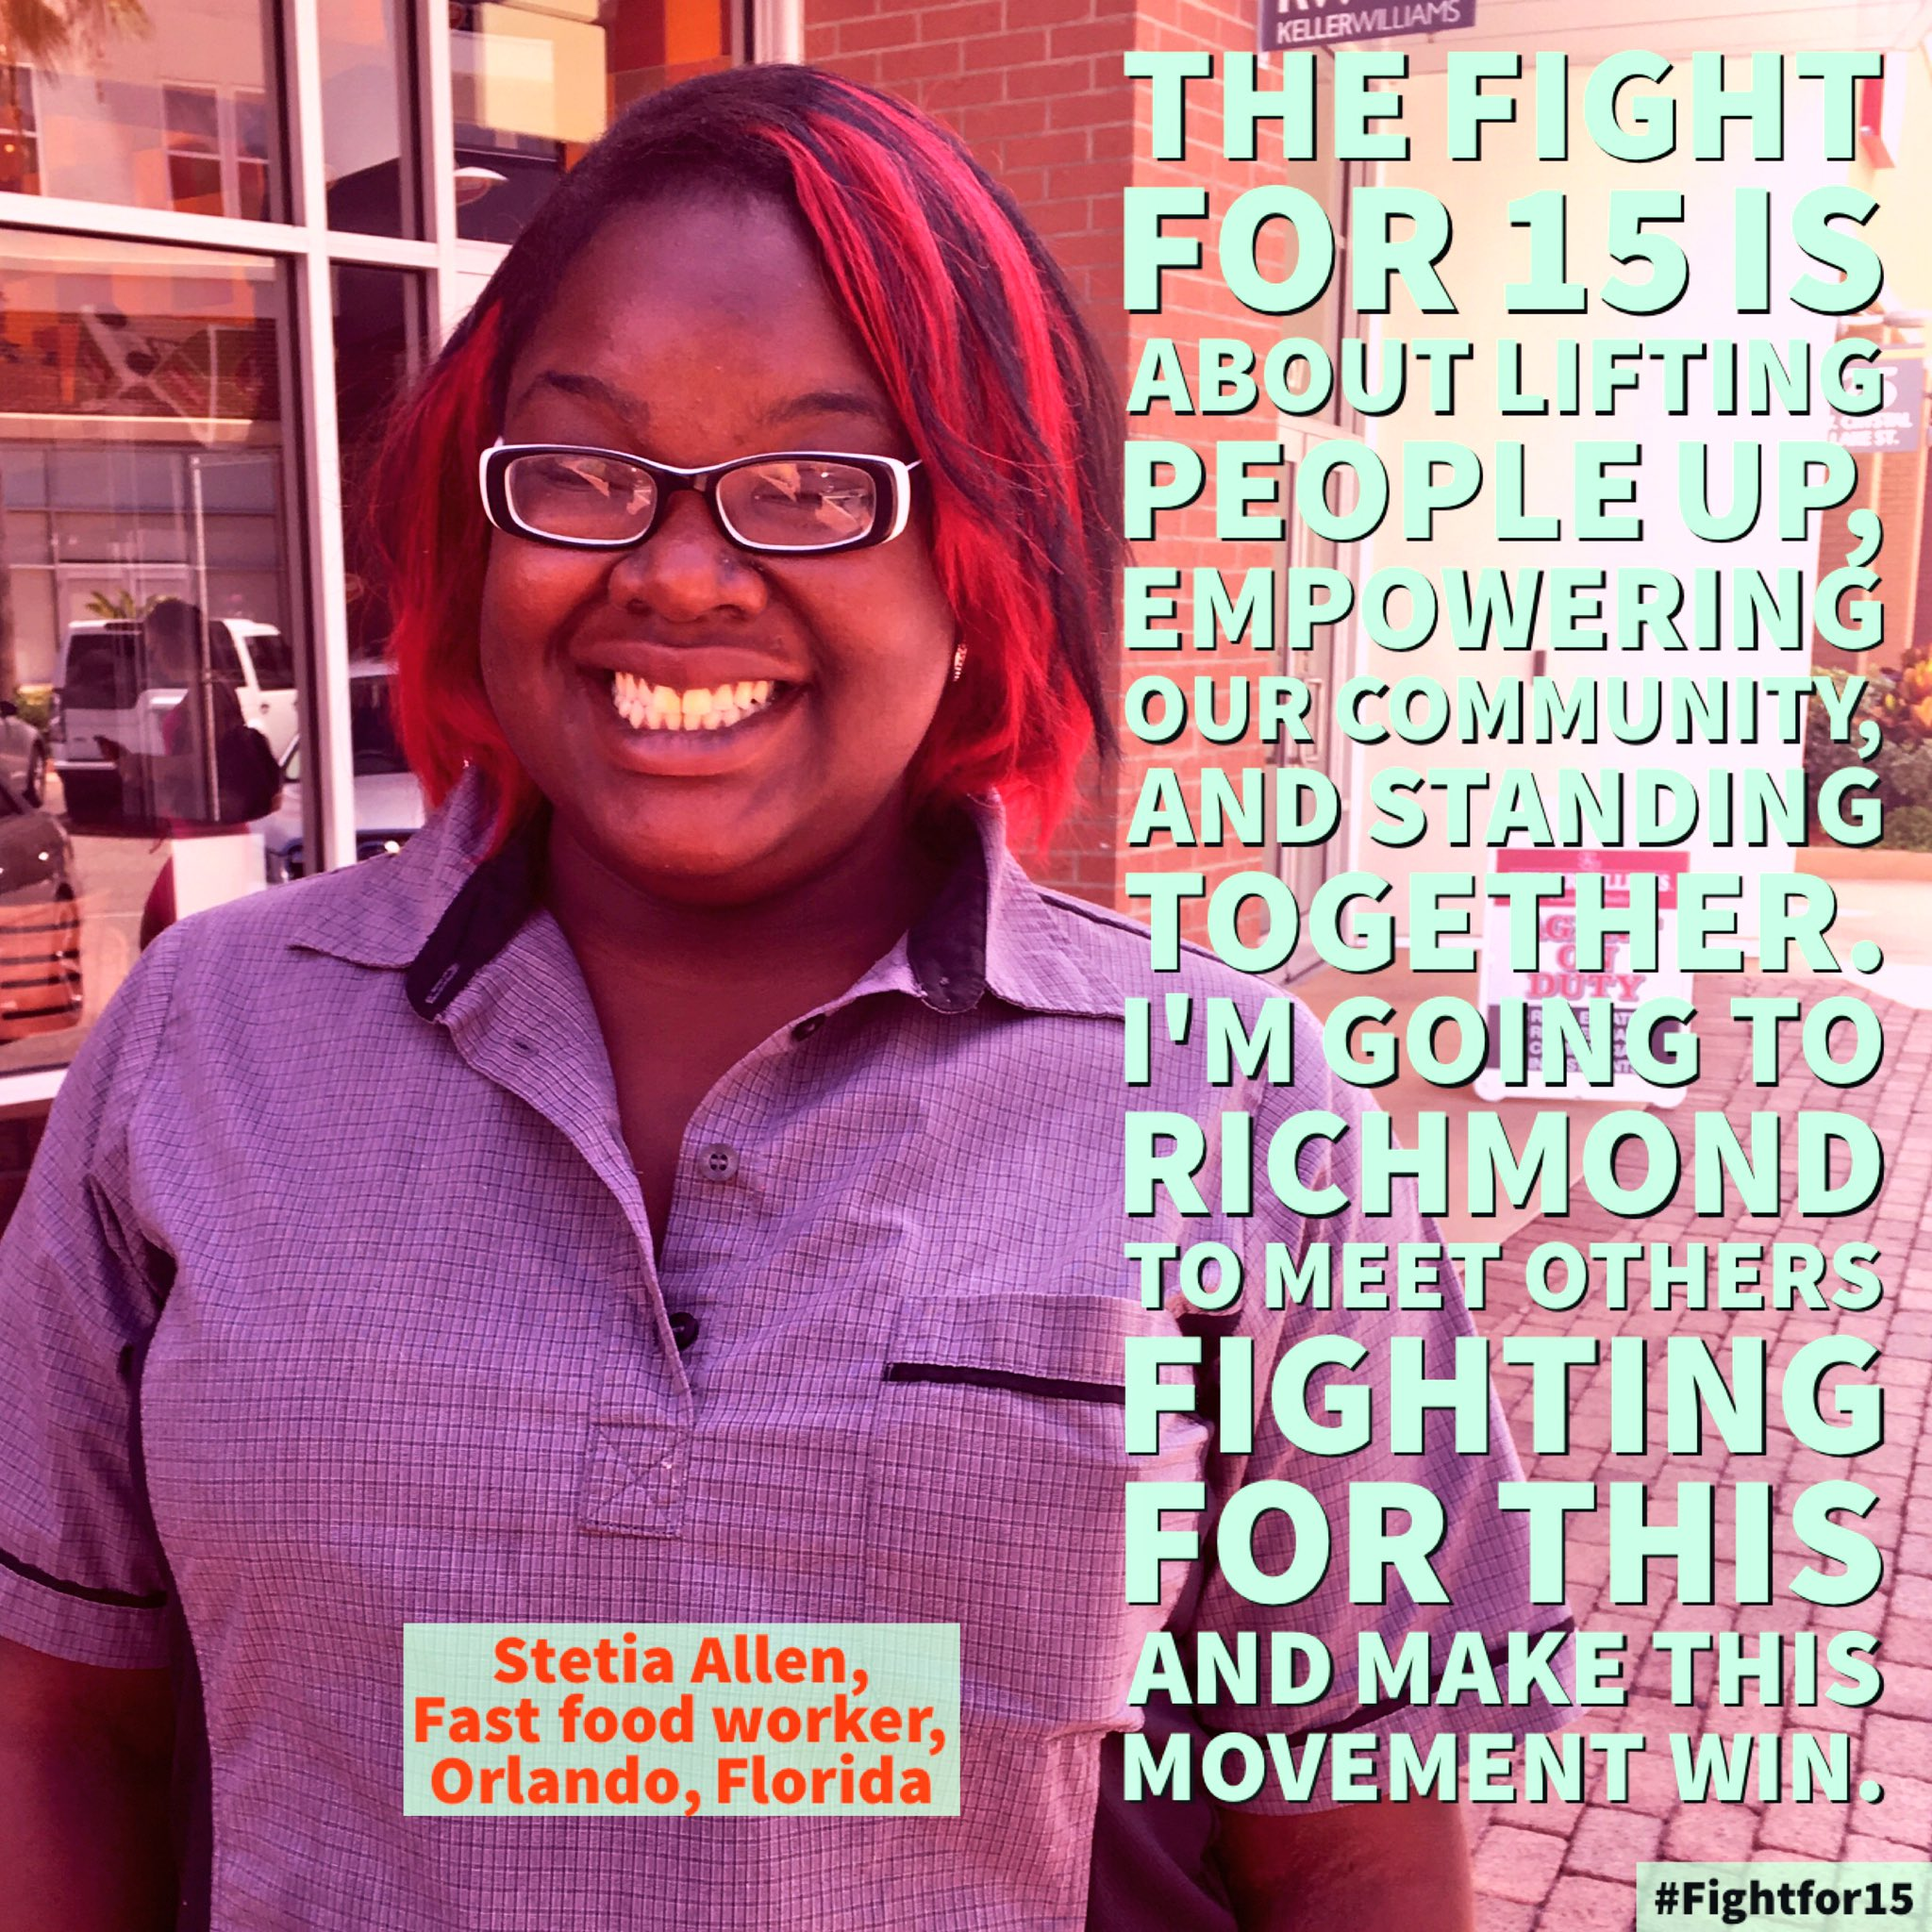 We'll join Stetia at the #FightFor15 National Convention to empower our communities https://t.co/1UmEtBEKRW https://t.co/tKuSFMUZpt